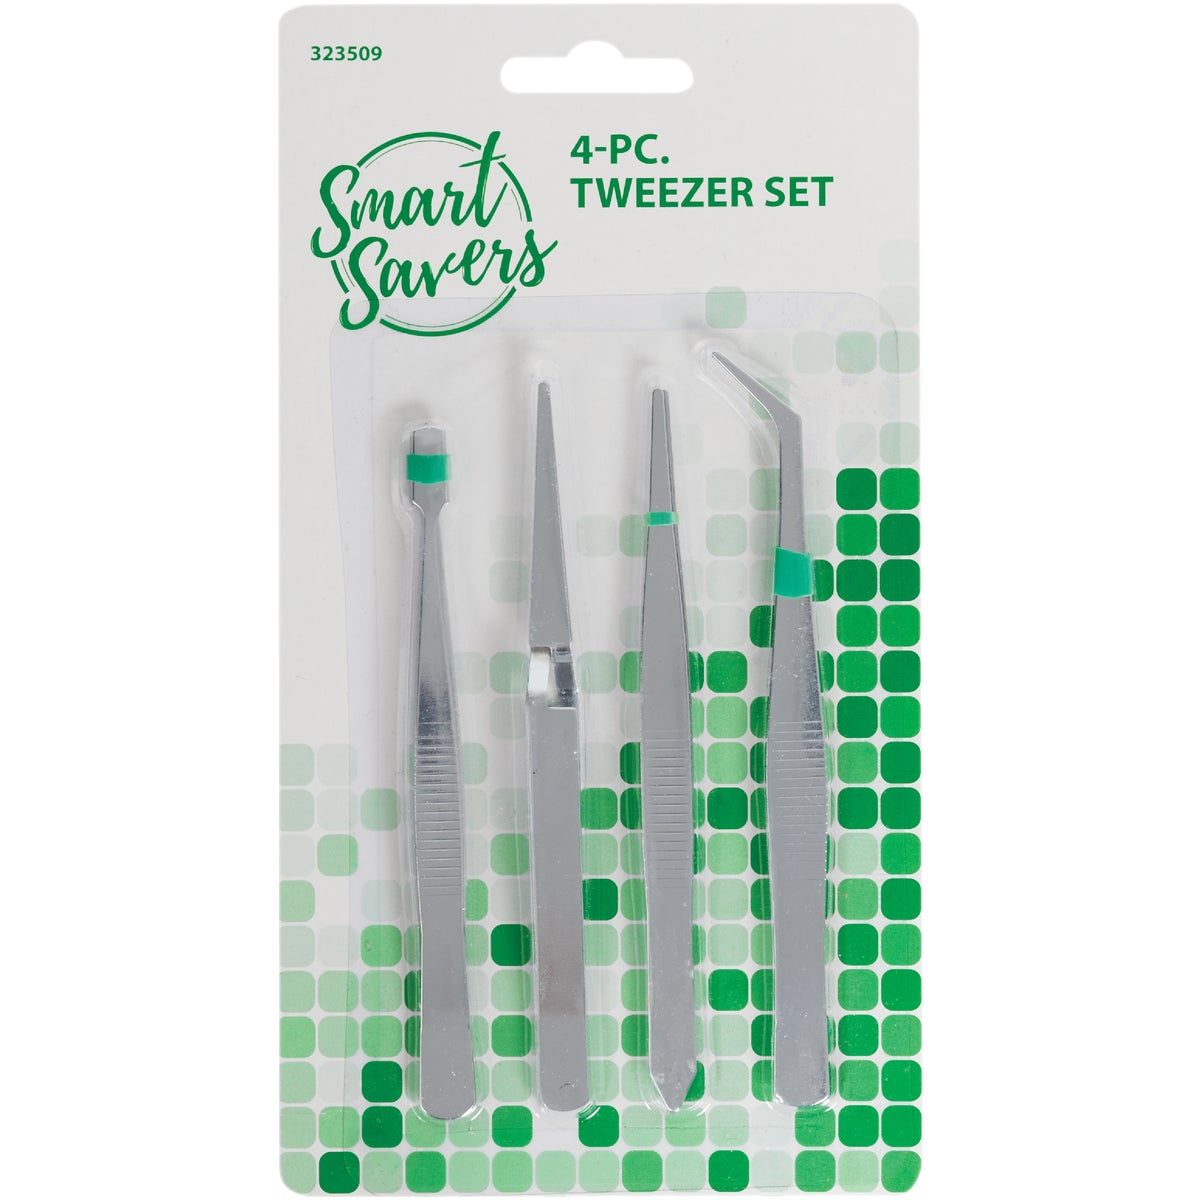 4PC TWEEZER SET - HW077 by Do it Best